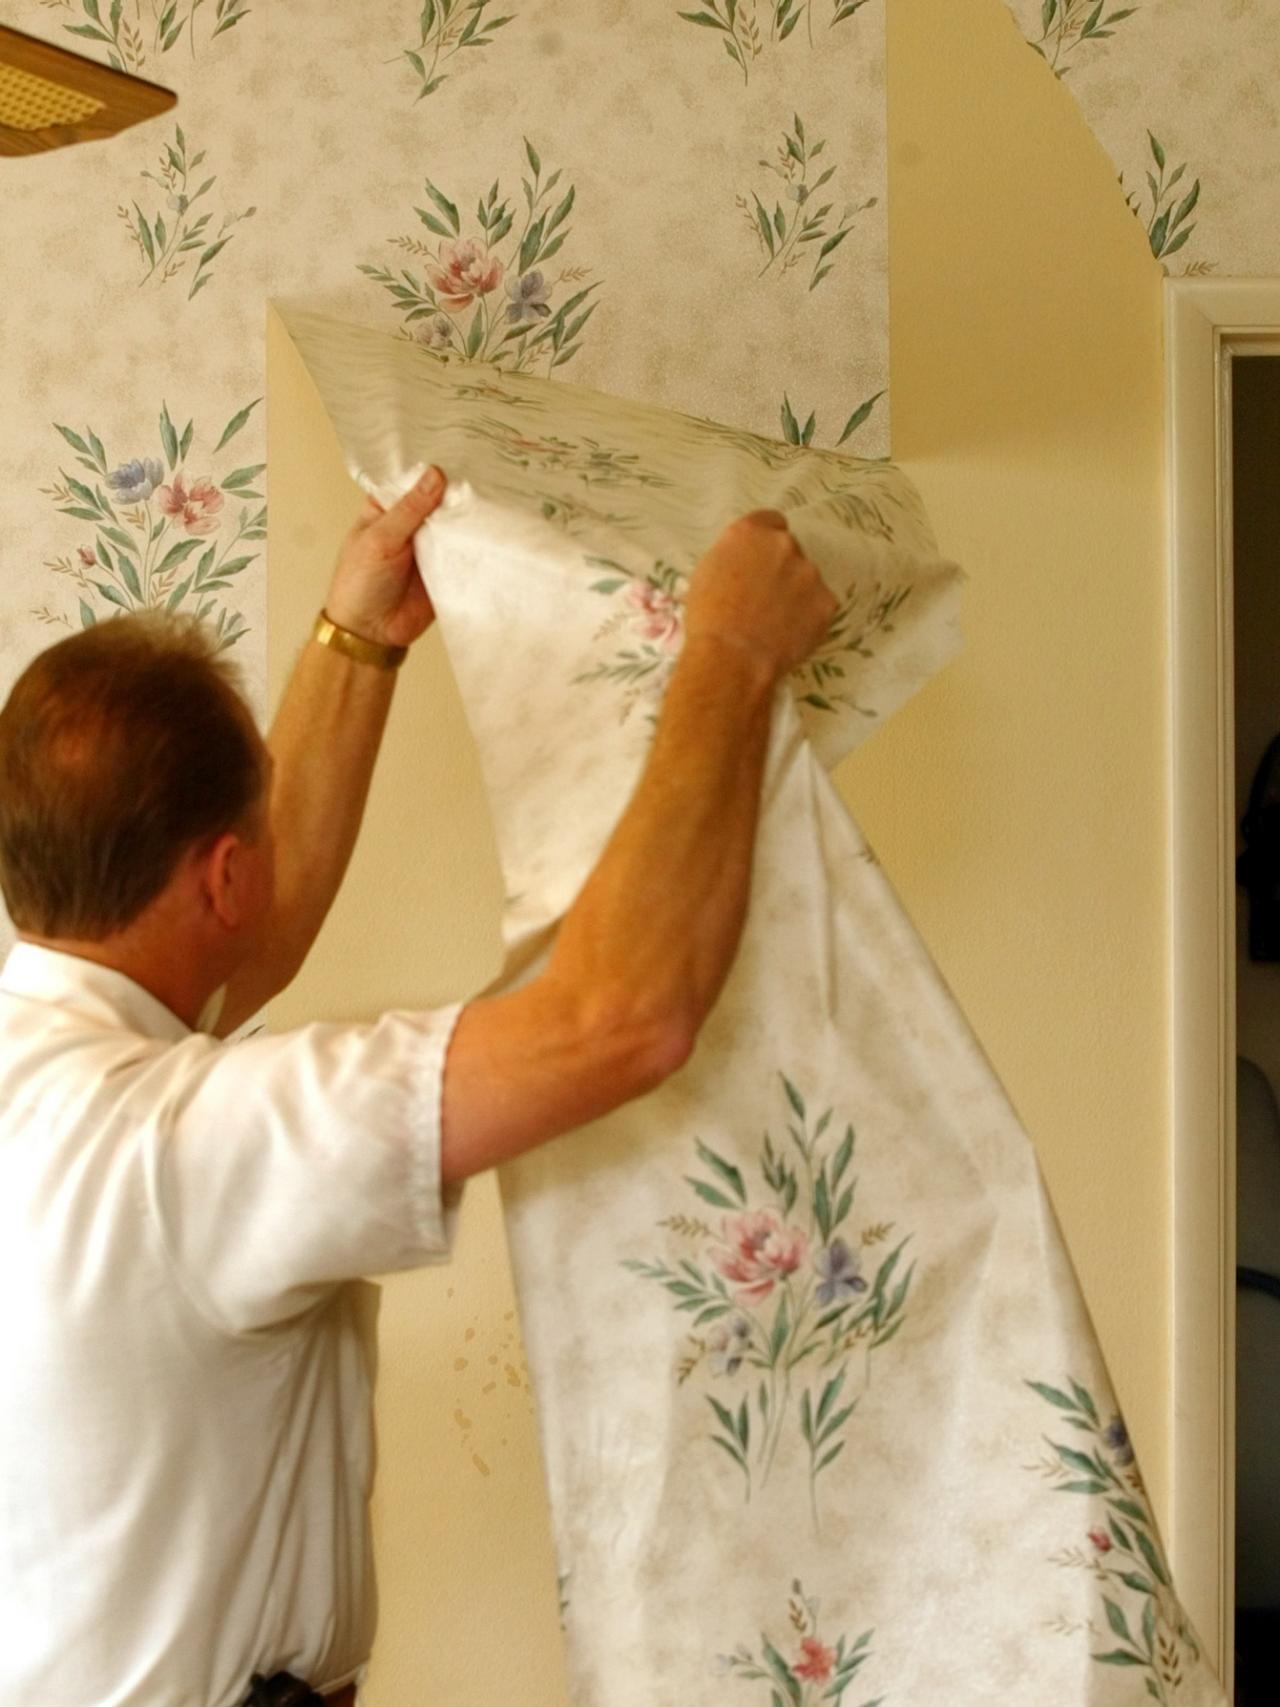 Free Download How To Remove Wallpaper Hgtv 1280x1707 For